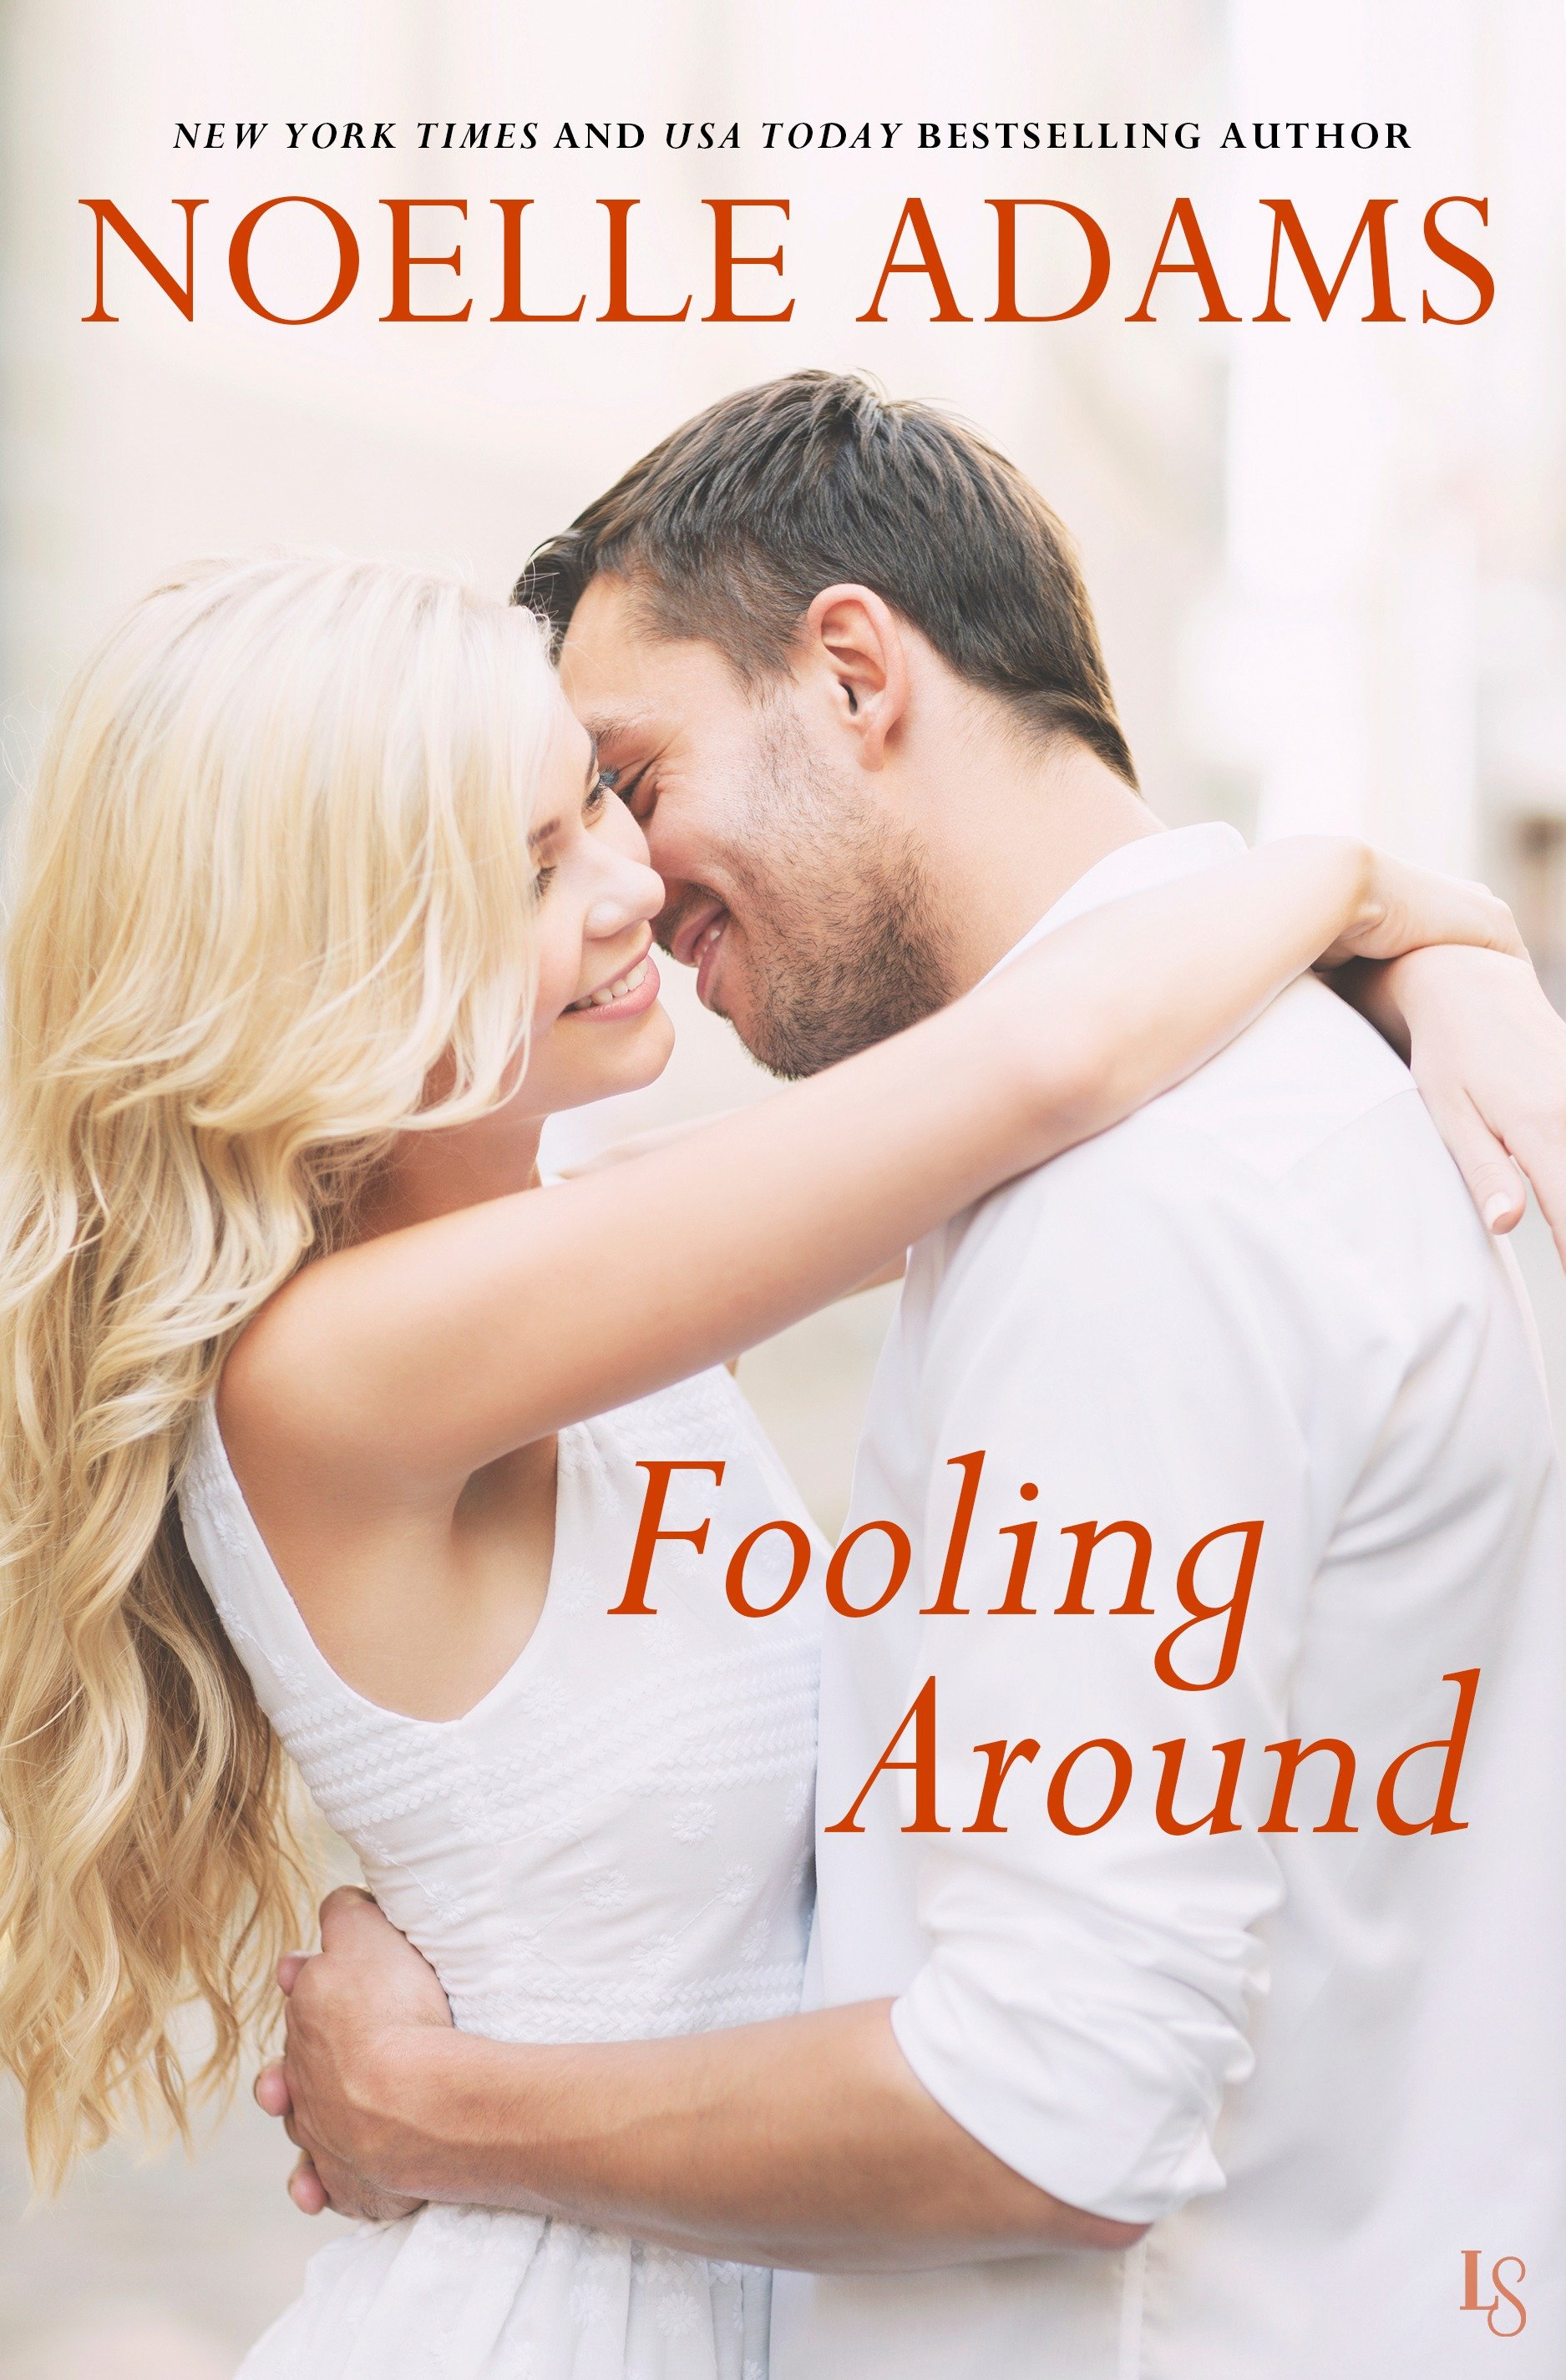 Fooling around cover image